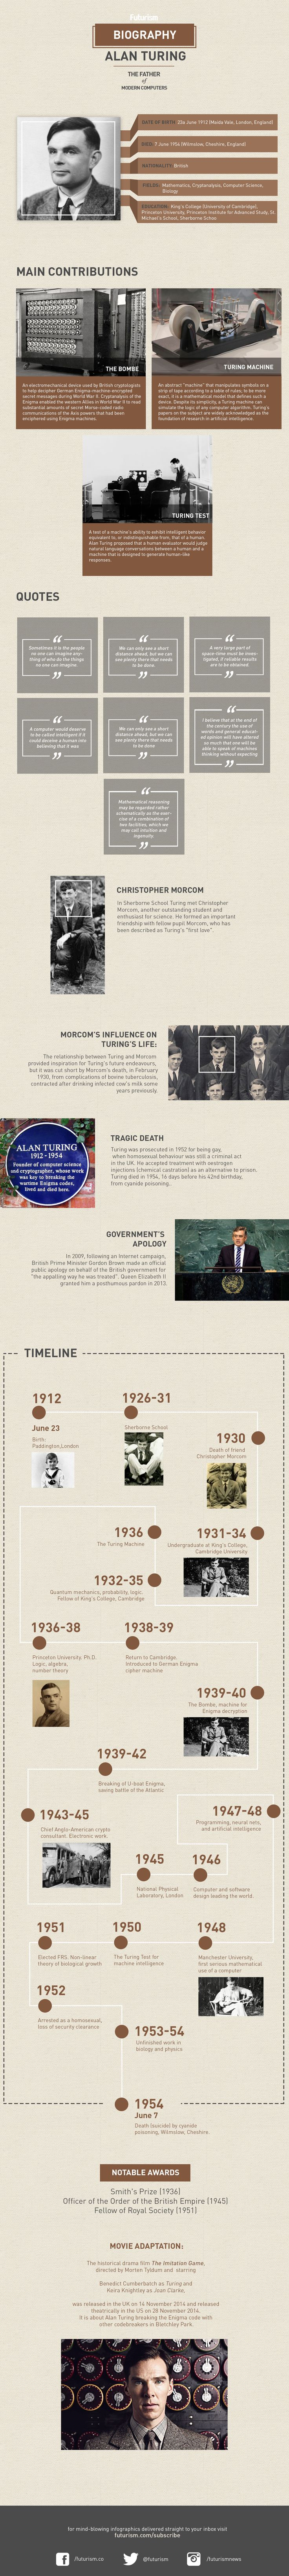 A Tribute to Alan Turing: The Father of Modern Computers — Check out our custom infographic highlighting the life and accomplishments of Alan Turing, considered by many to be the father of artificial intelligence. From his pivotal work codebreaking during the Second World War to his design of the Turing Test, this infographic highlights everything up to his tragic suicide in 1954.  — https://futurism.com/images/turing/